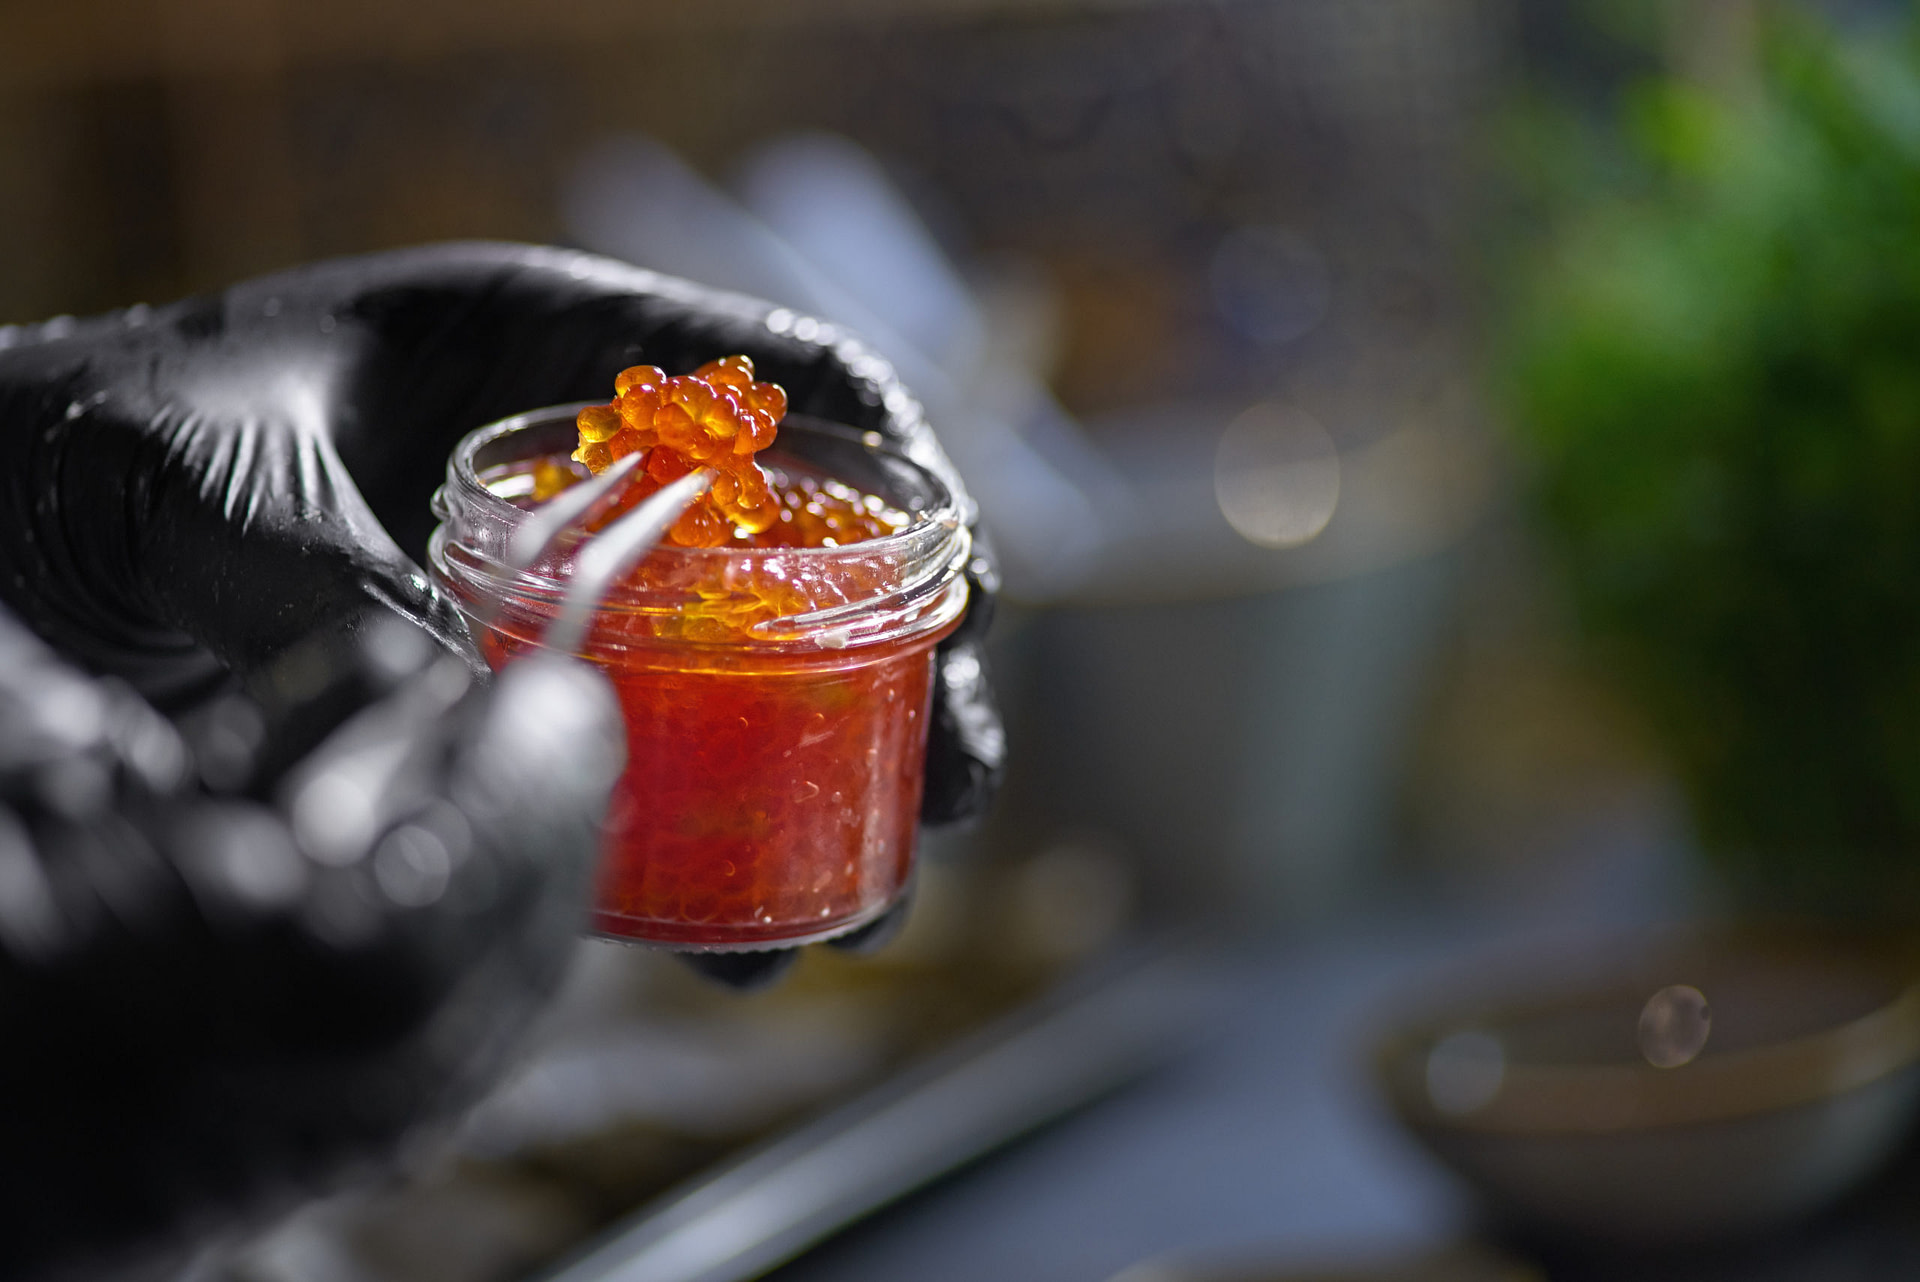 Food concept. The chef picks red caviar from a jar with tweezers. Selective focus. Shallow depth of field. The process of making spaghetti with seafood.